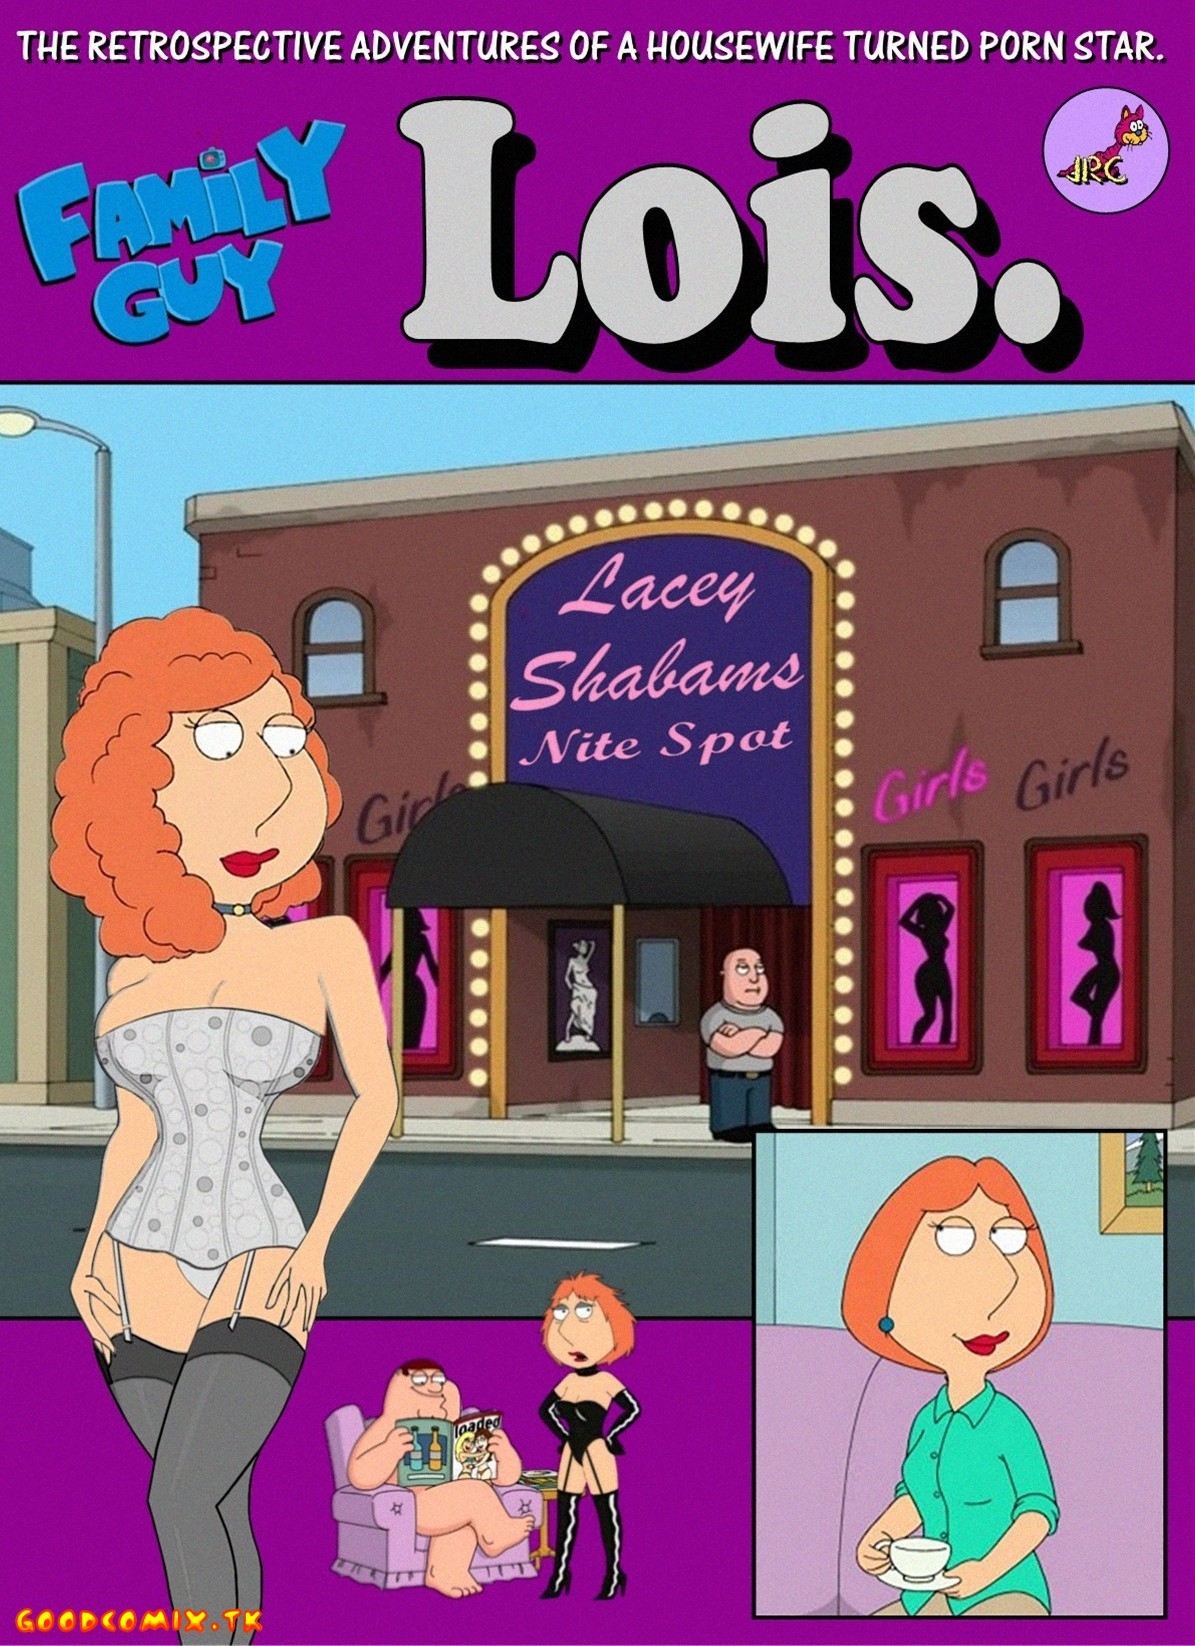 Goodcomix Family Guy - [JRC] - The Retrospective Adventures Of A Housewife Turned Porno Star - Lois